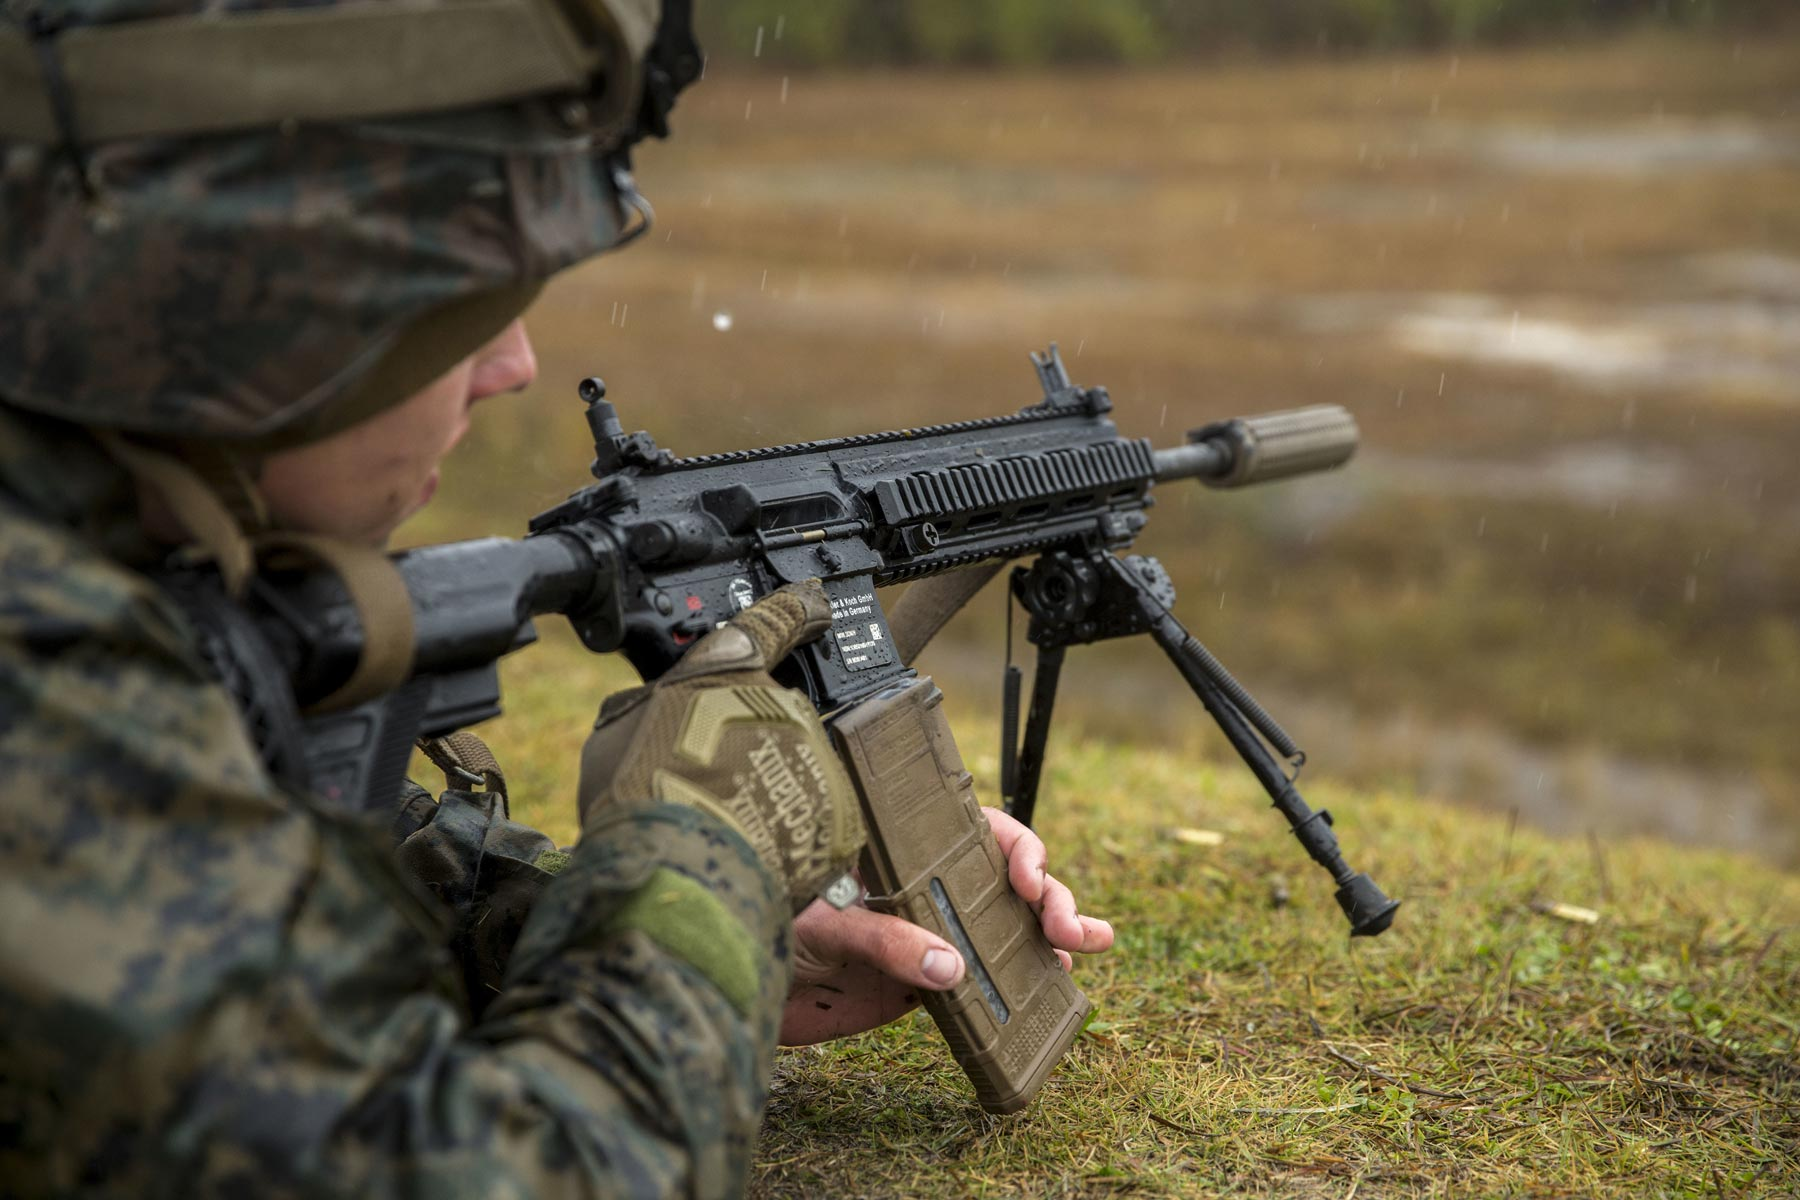 M27s and 'Head-to-Toe' Gear Overhaul on the Way for Marine Grunts | Military .com